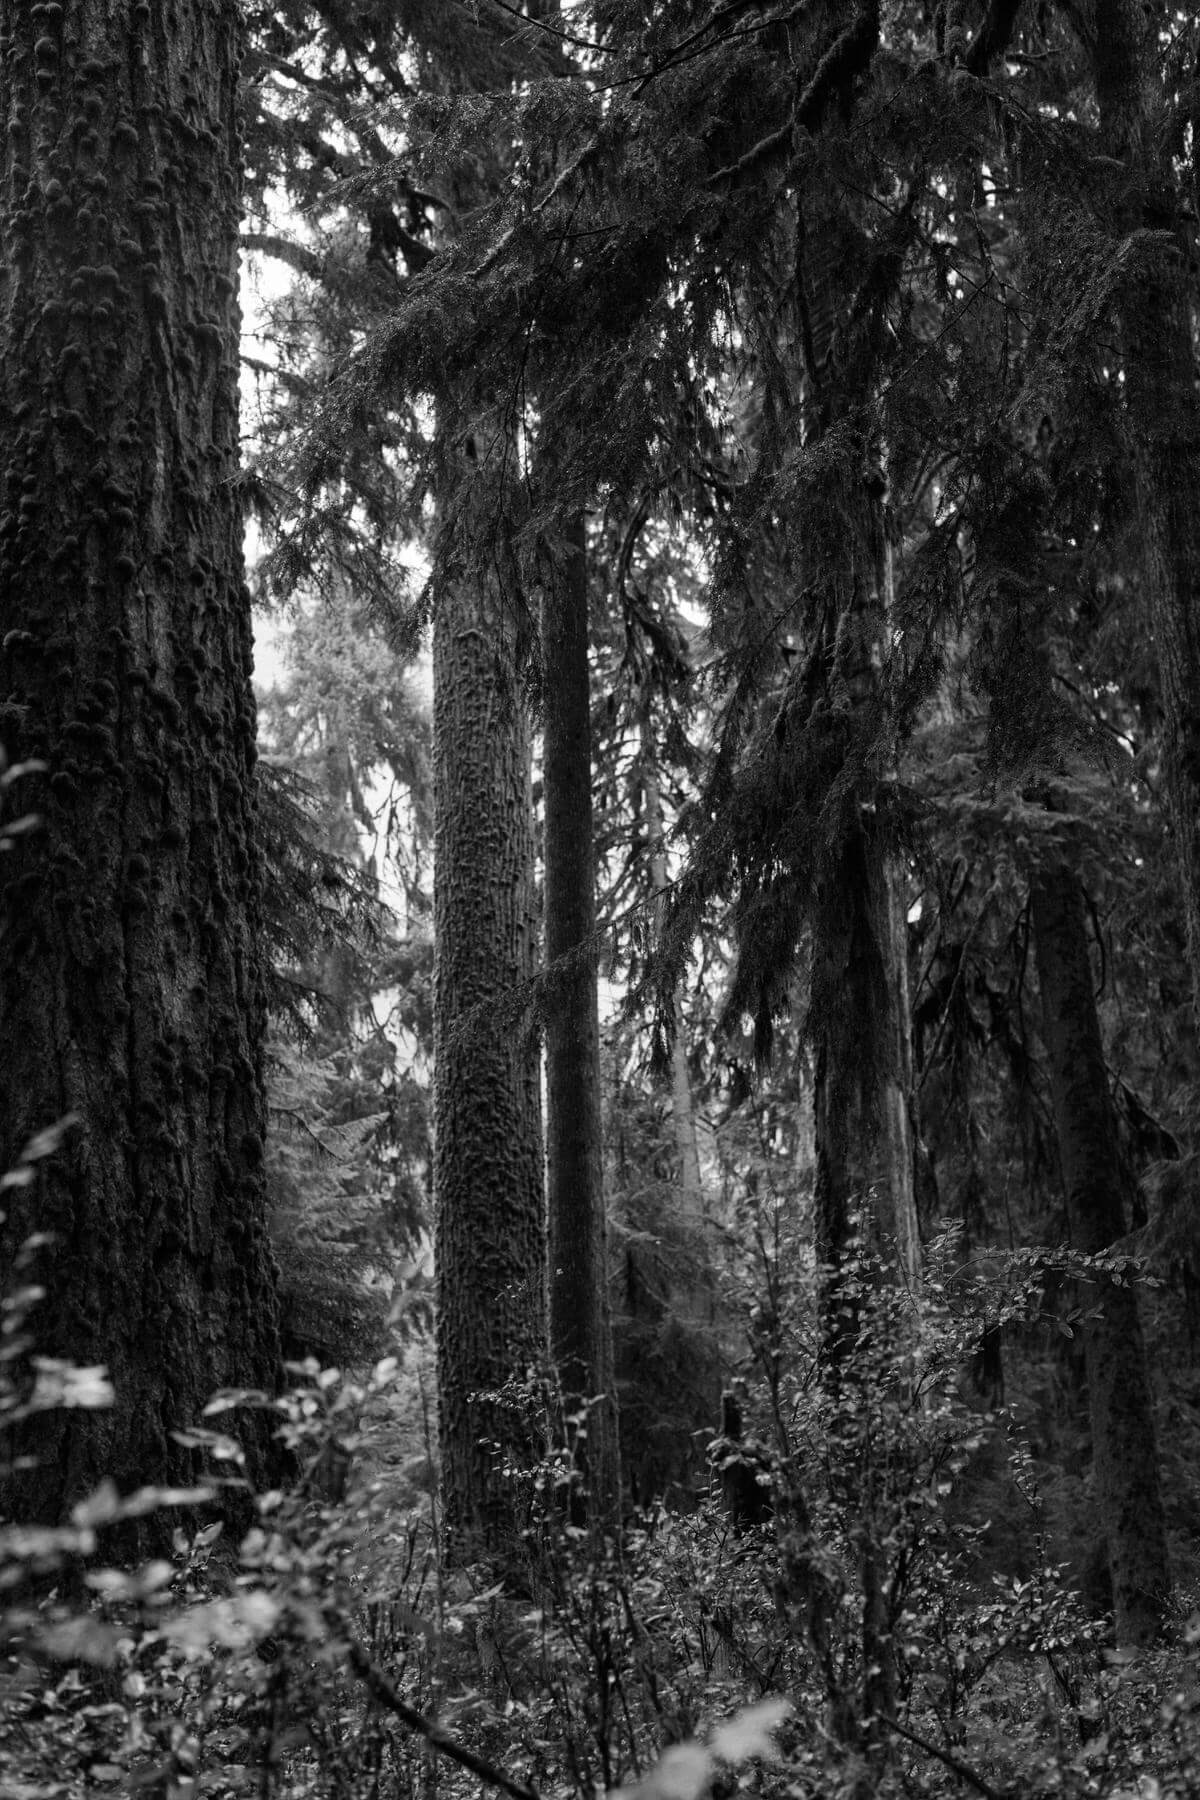 Olympic-National-Park-Washington-black-and-white-fine-art-photography-by-Studio-L-photographer-Laura-Schneider-_9174